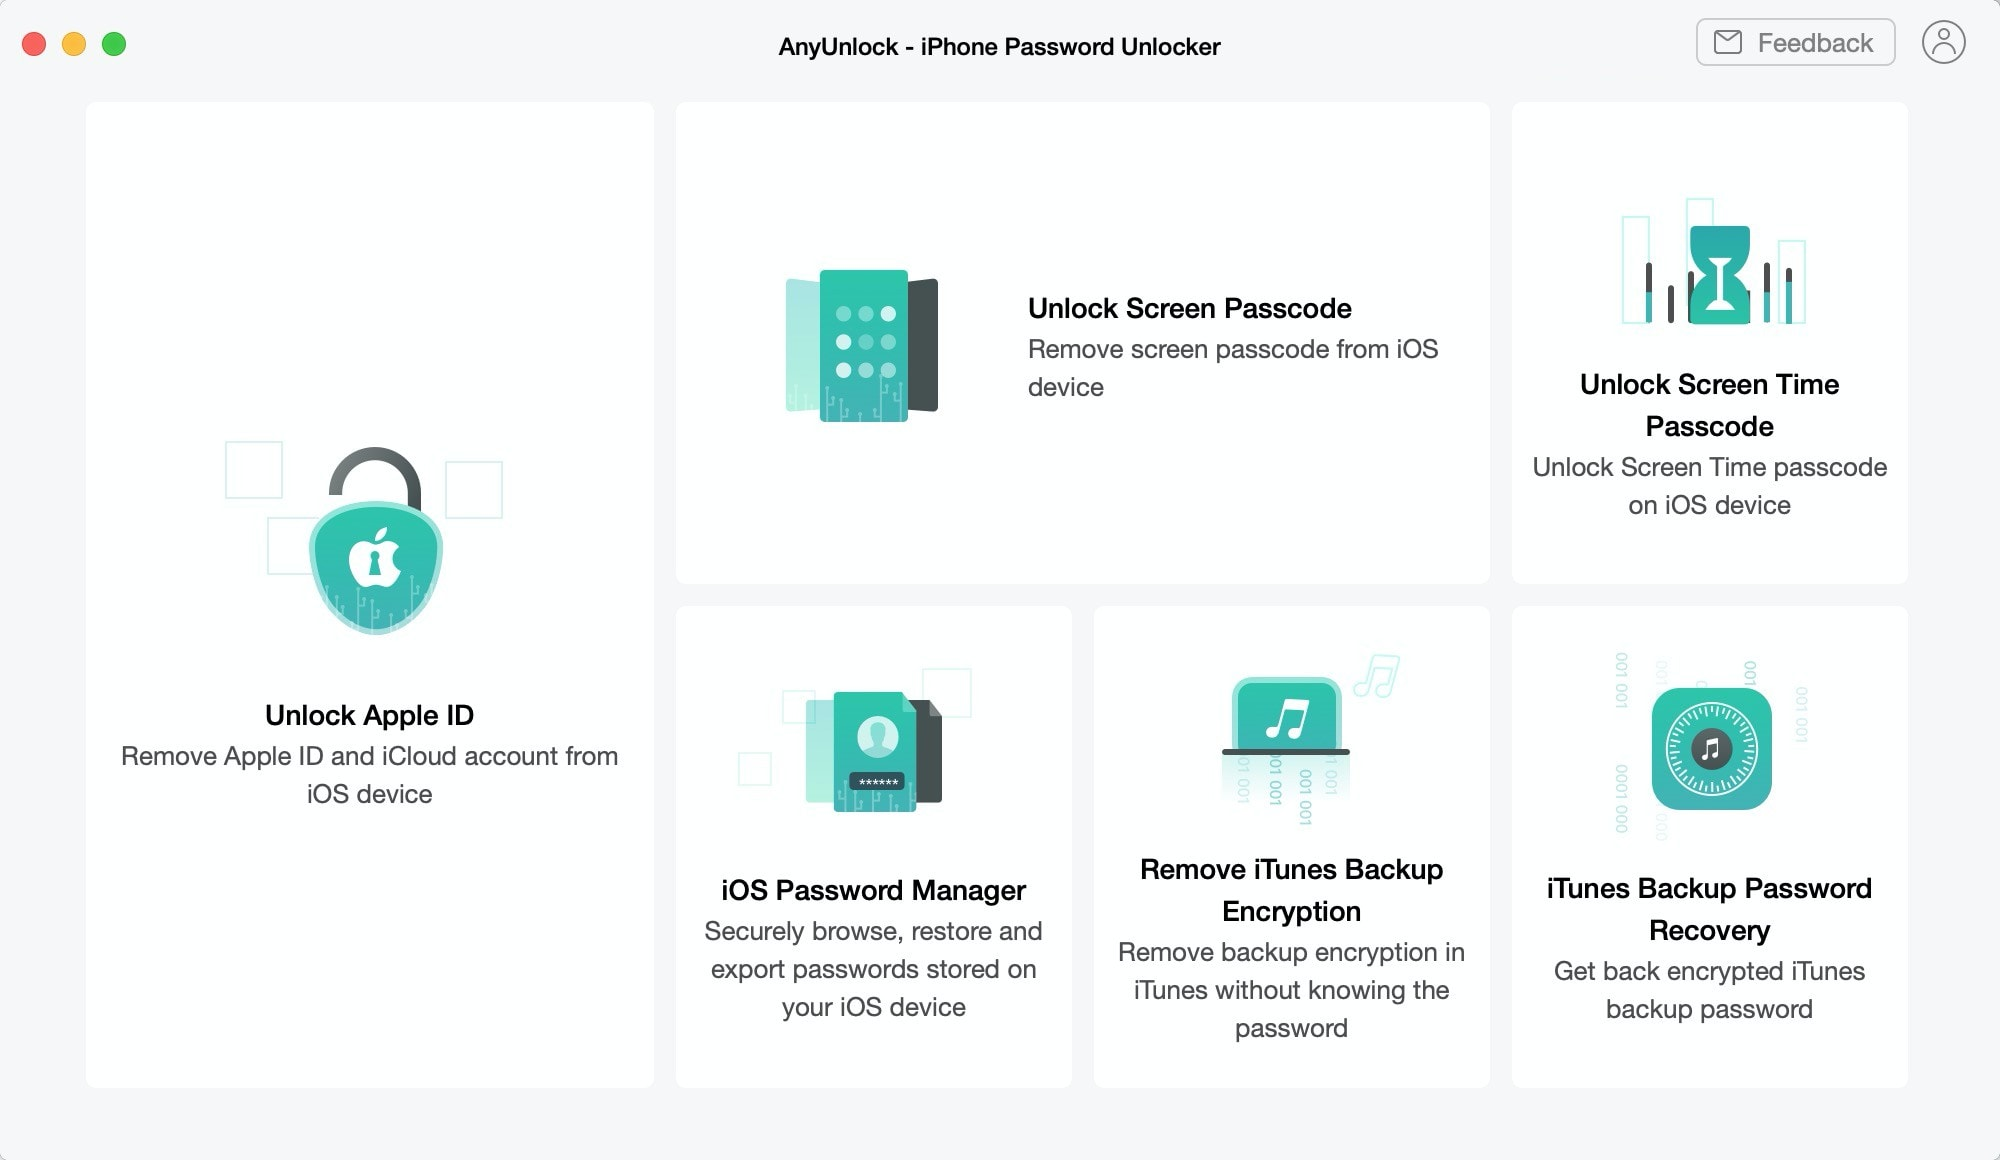 AnyUnlock iPhone unlocker offers powerful tools for dealing with lost iPhone passwords.